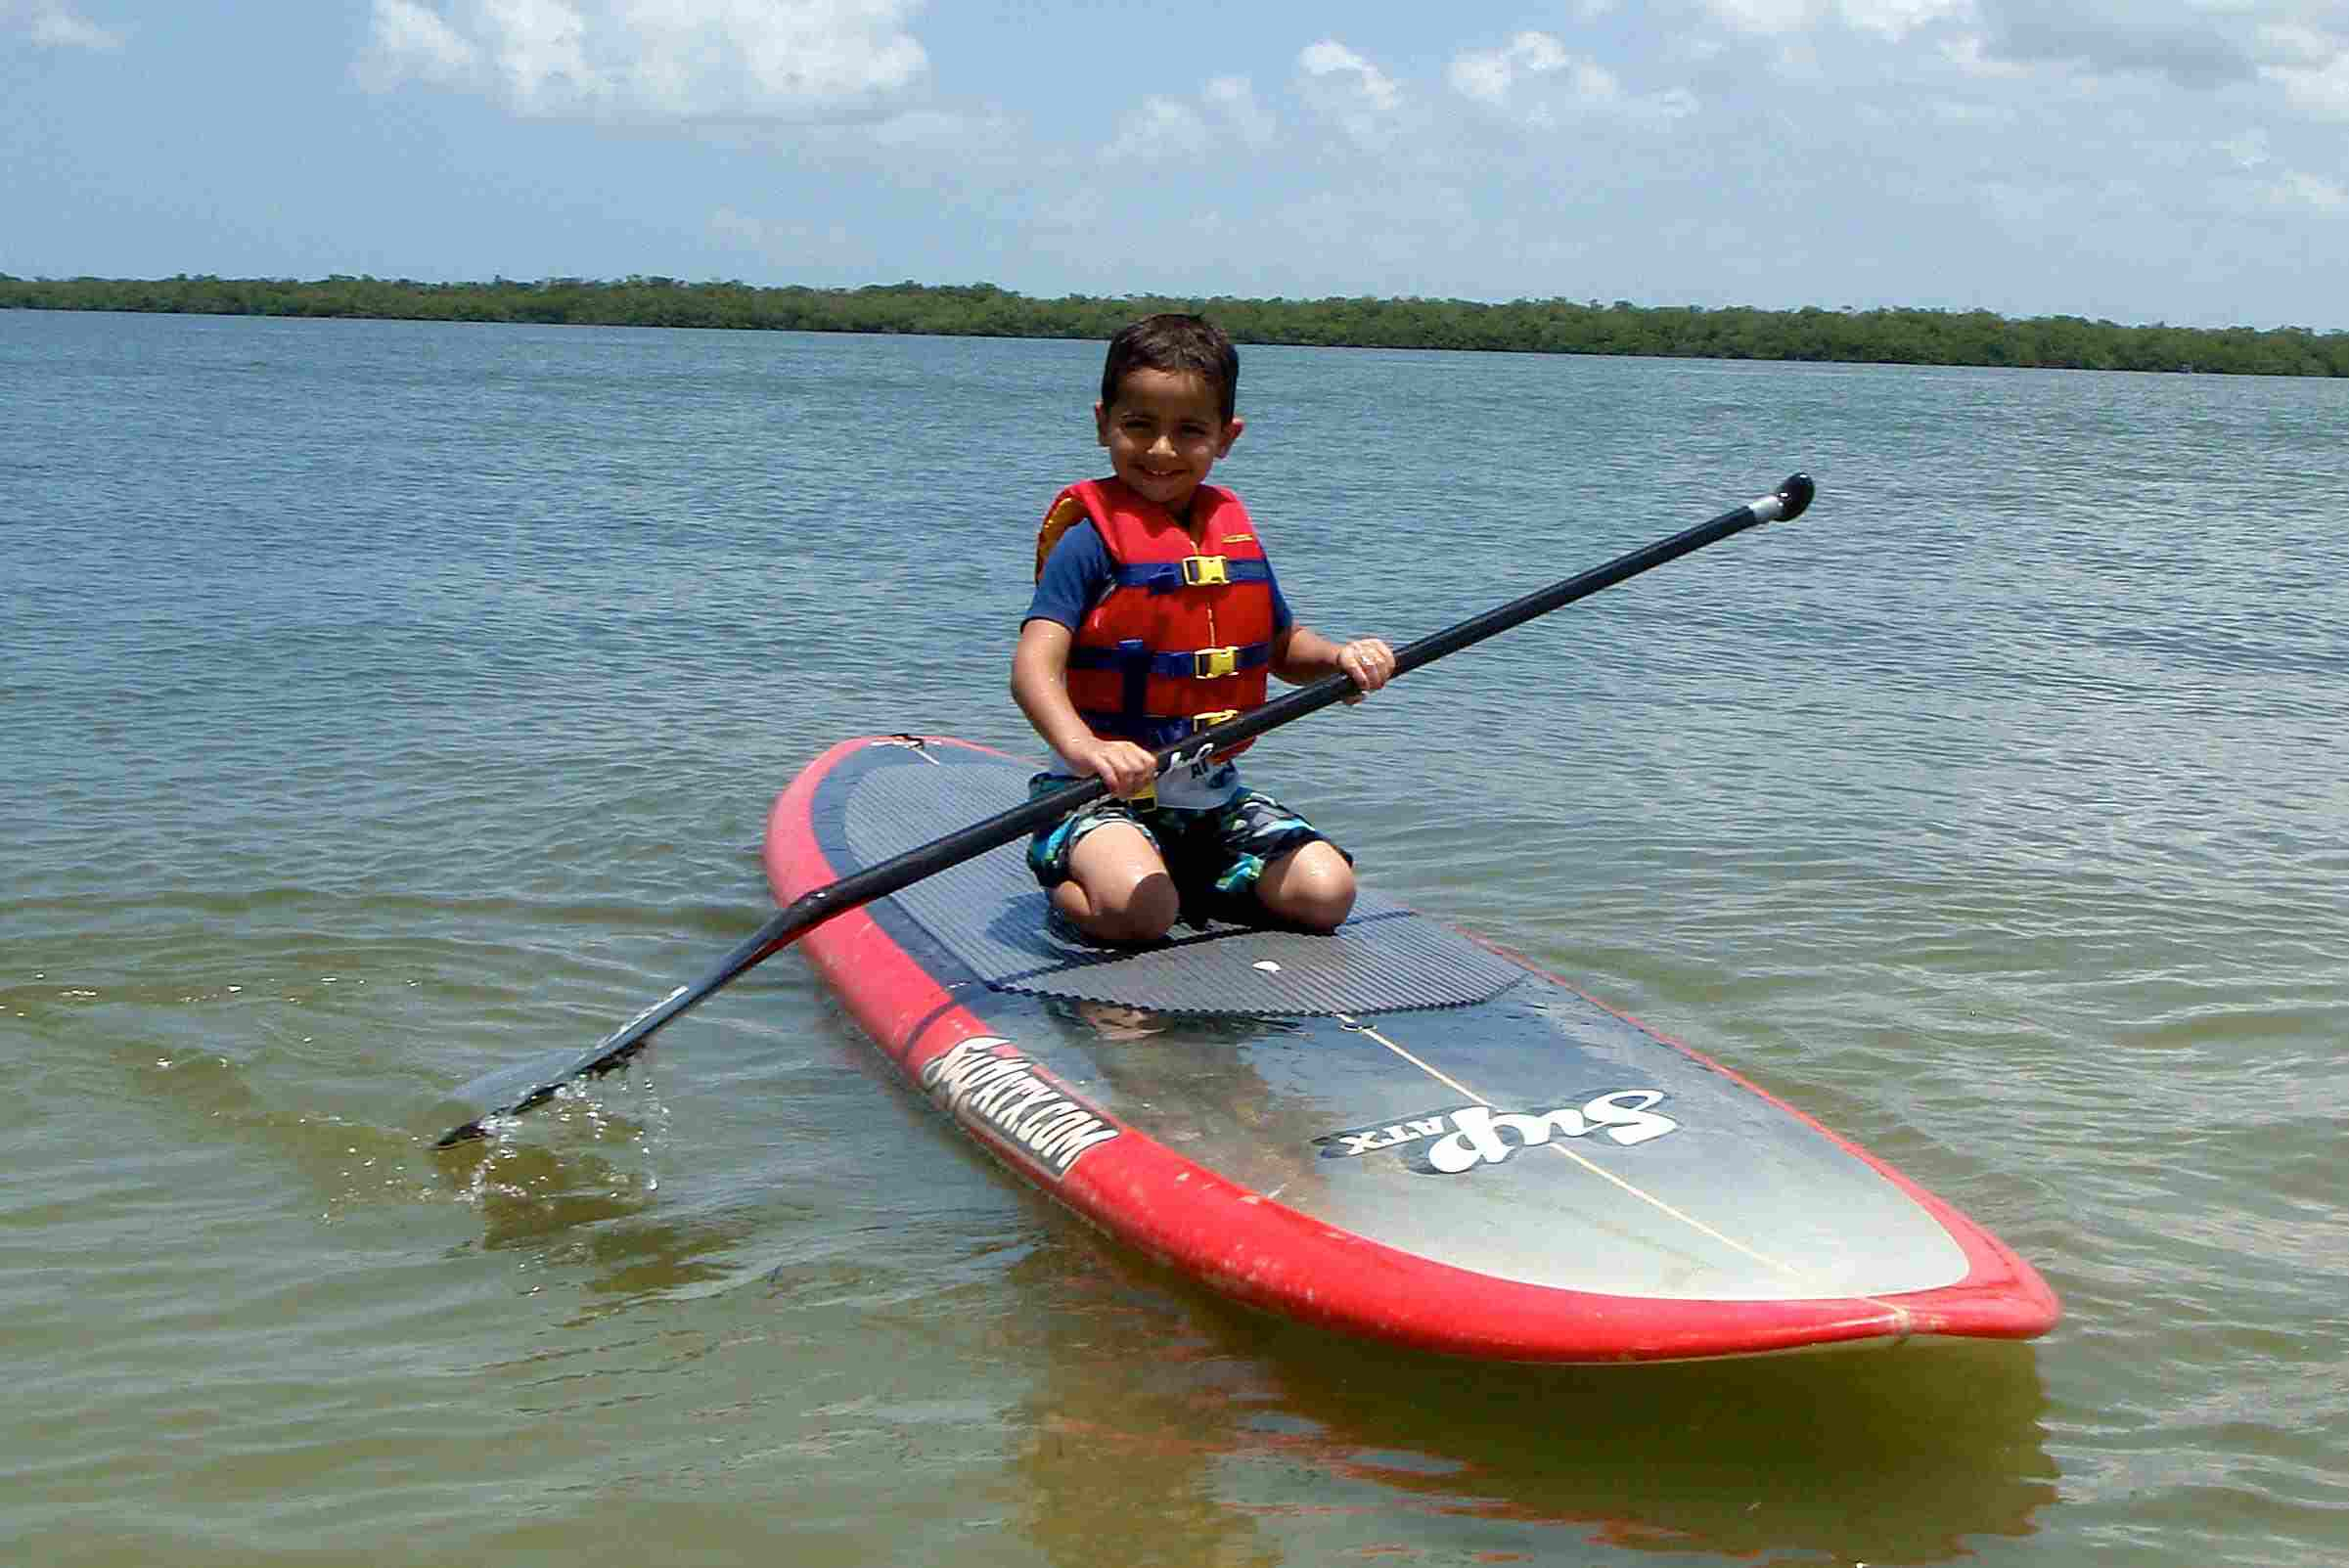 A Child Kneels on a Paddleboard